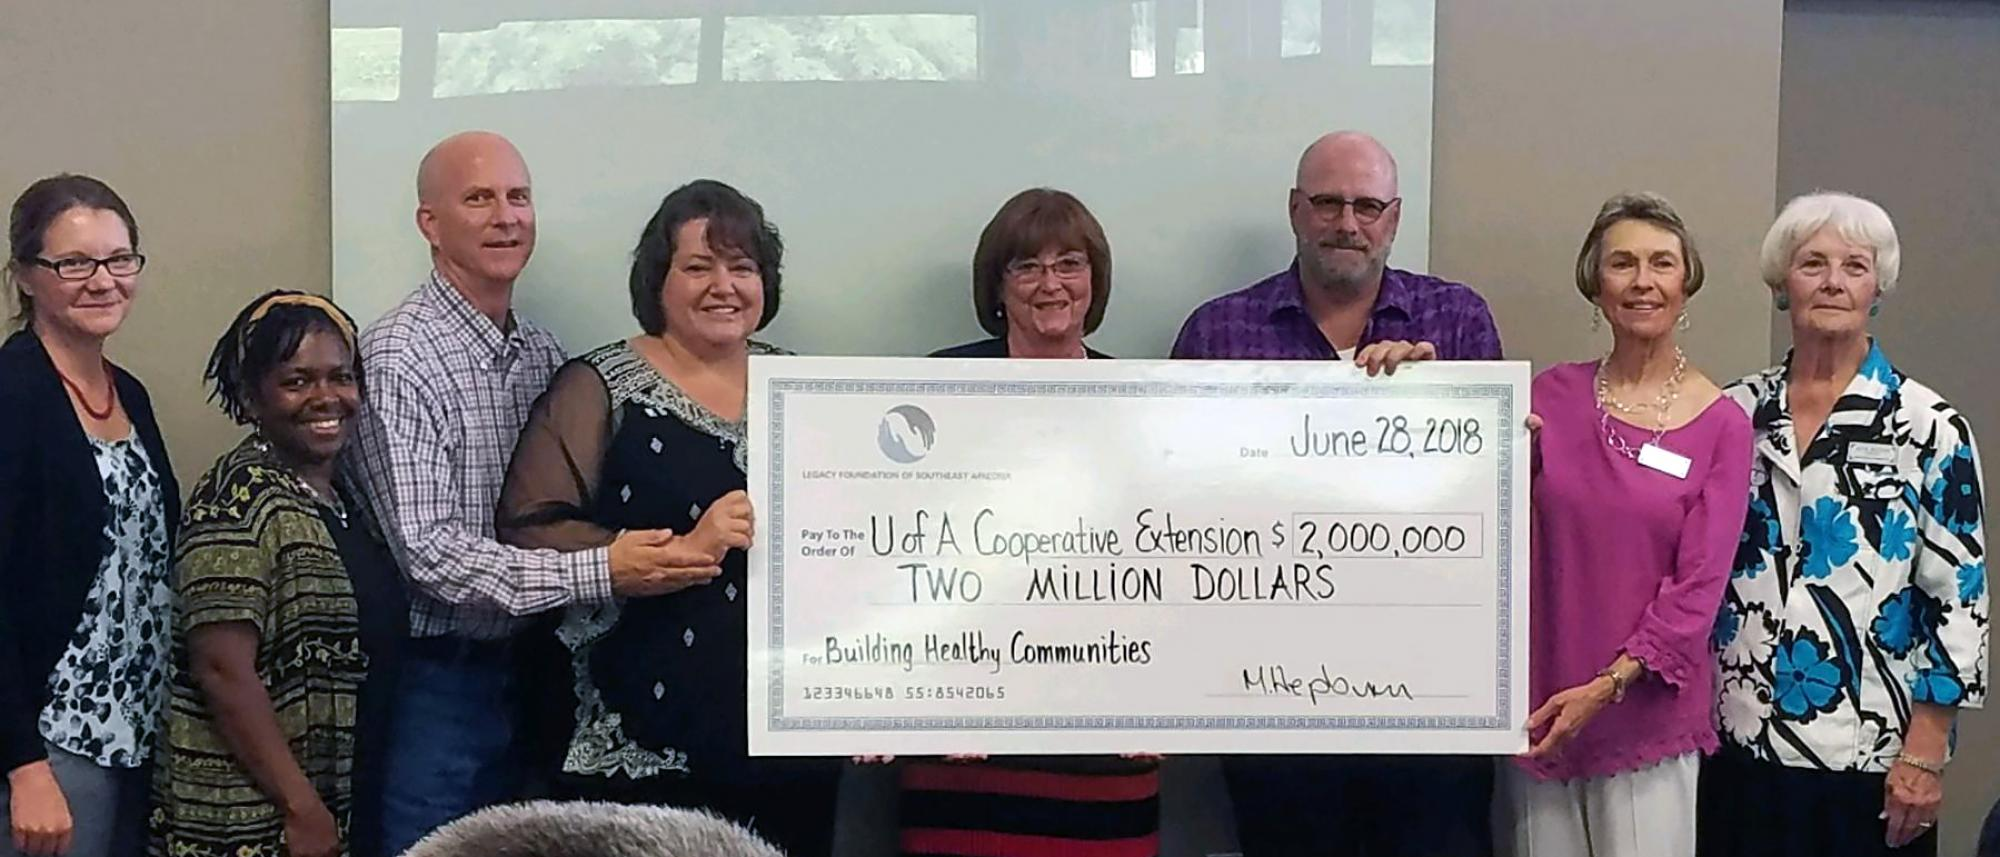 """Evelyn Whitmer  represented UA Cooperative Extension when the Legacy Foundation of Southeast Arizona presented a $2 million grant to fund """"Building Healthy Communities."""""""